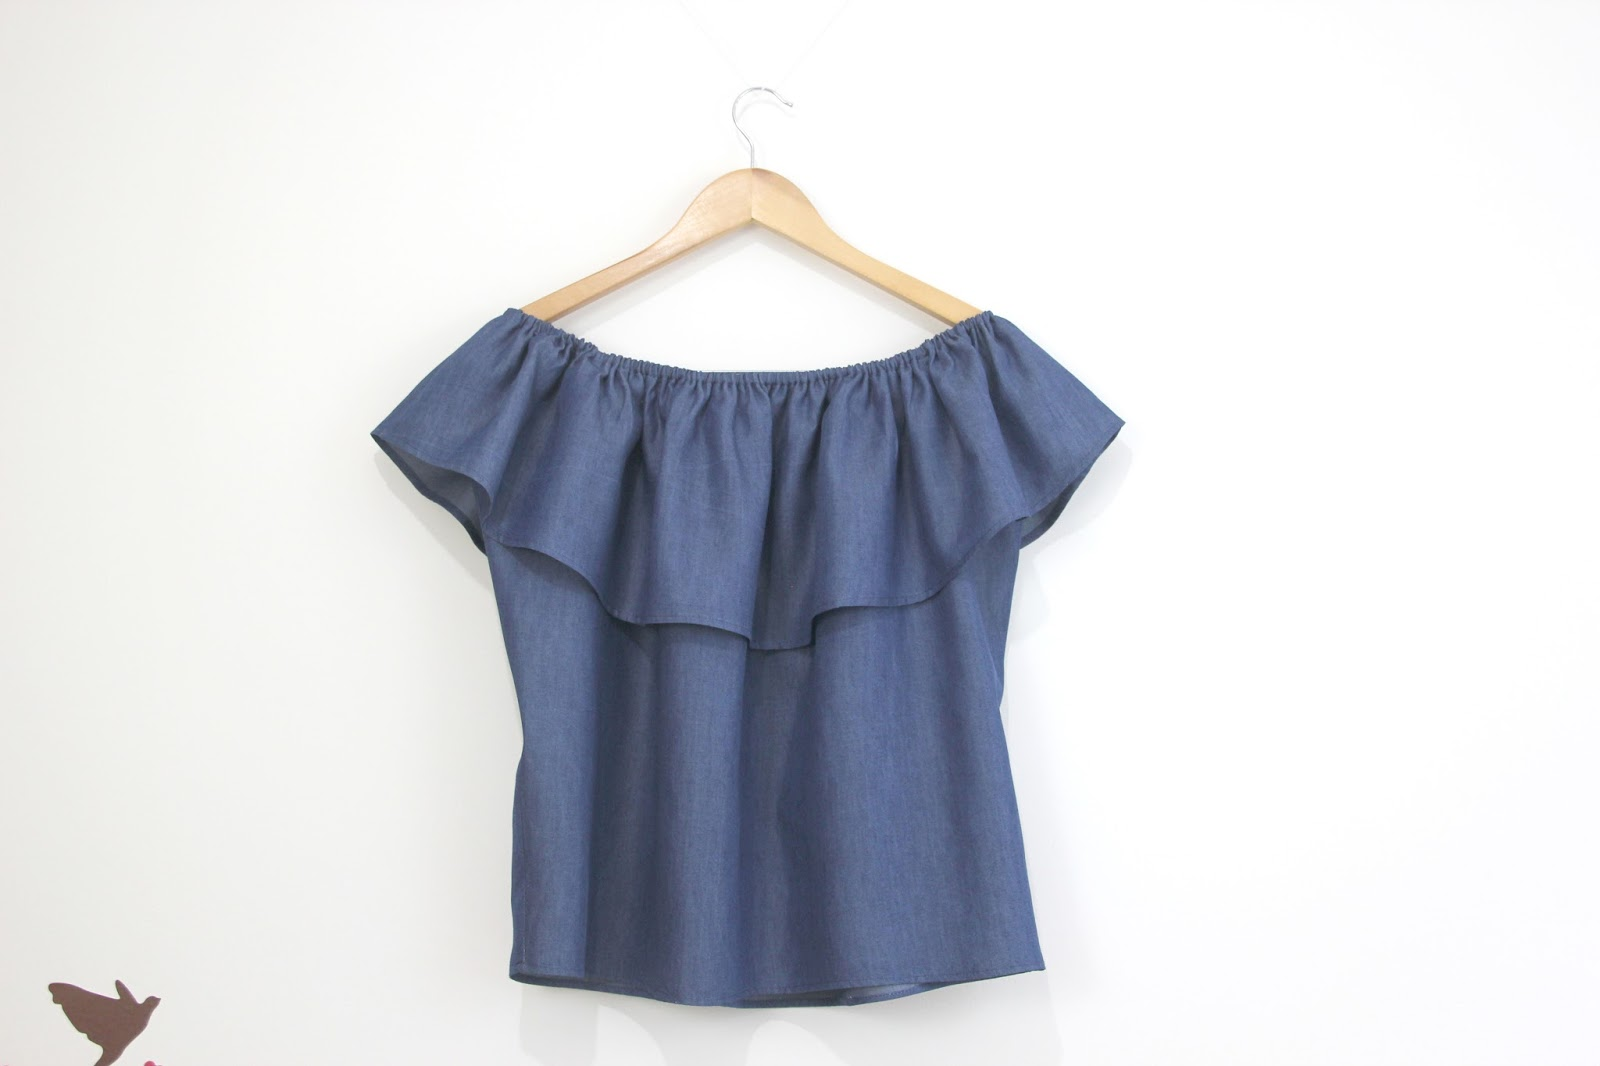 DIY Blusa sin hombros DENIM - Handbox Craft Lovers | Comunidad DIY ...